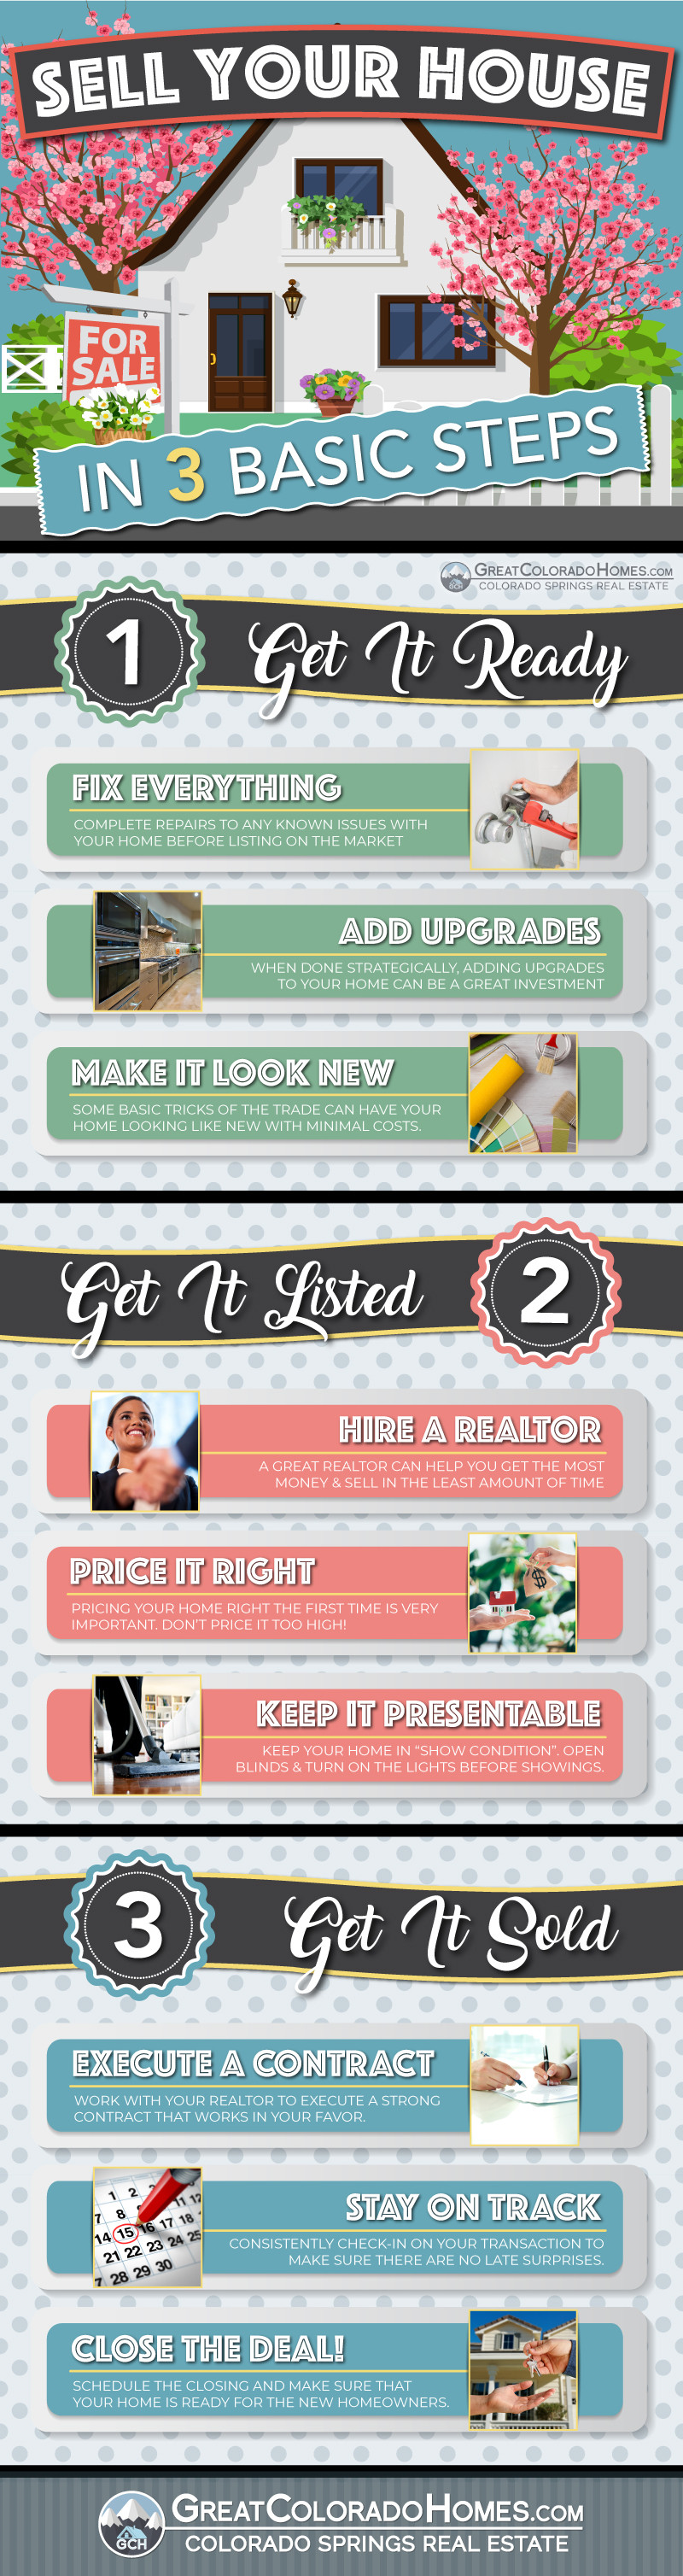 How to Sell Your House in 3 Basic Steps Infographic